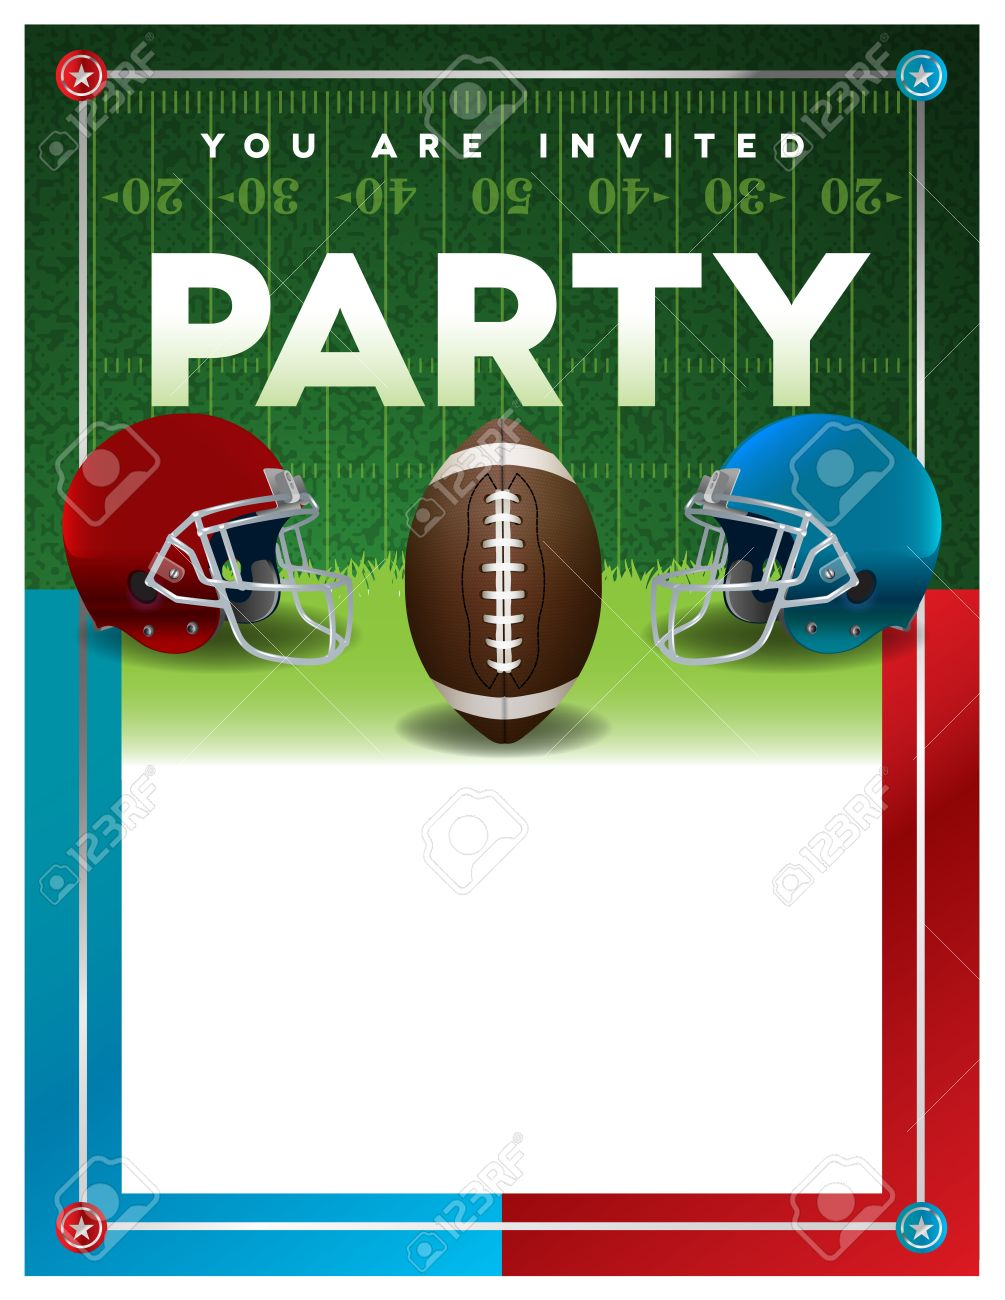 an american football party invitation flyer template design an american football party invitation flyer template design best flyer psd templates